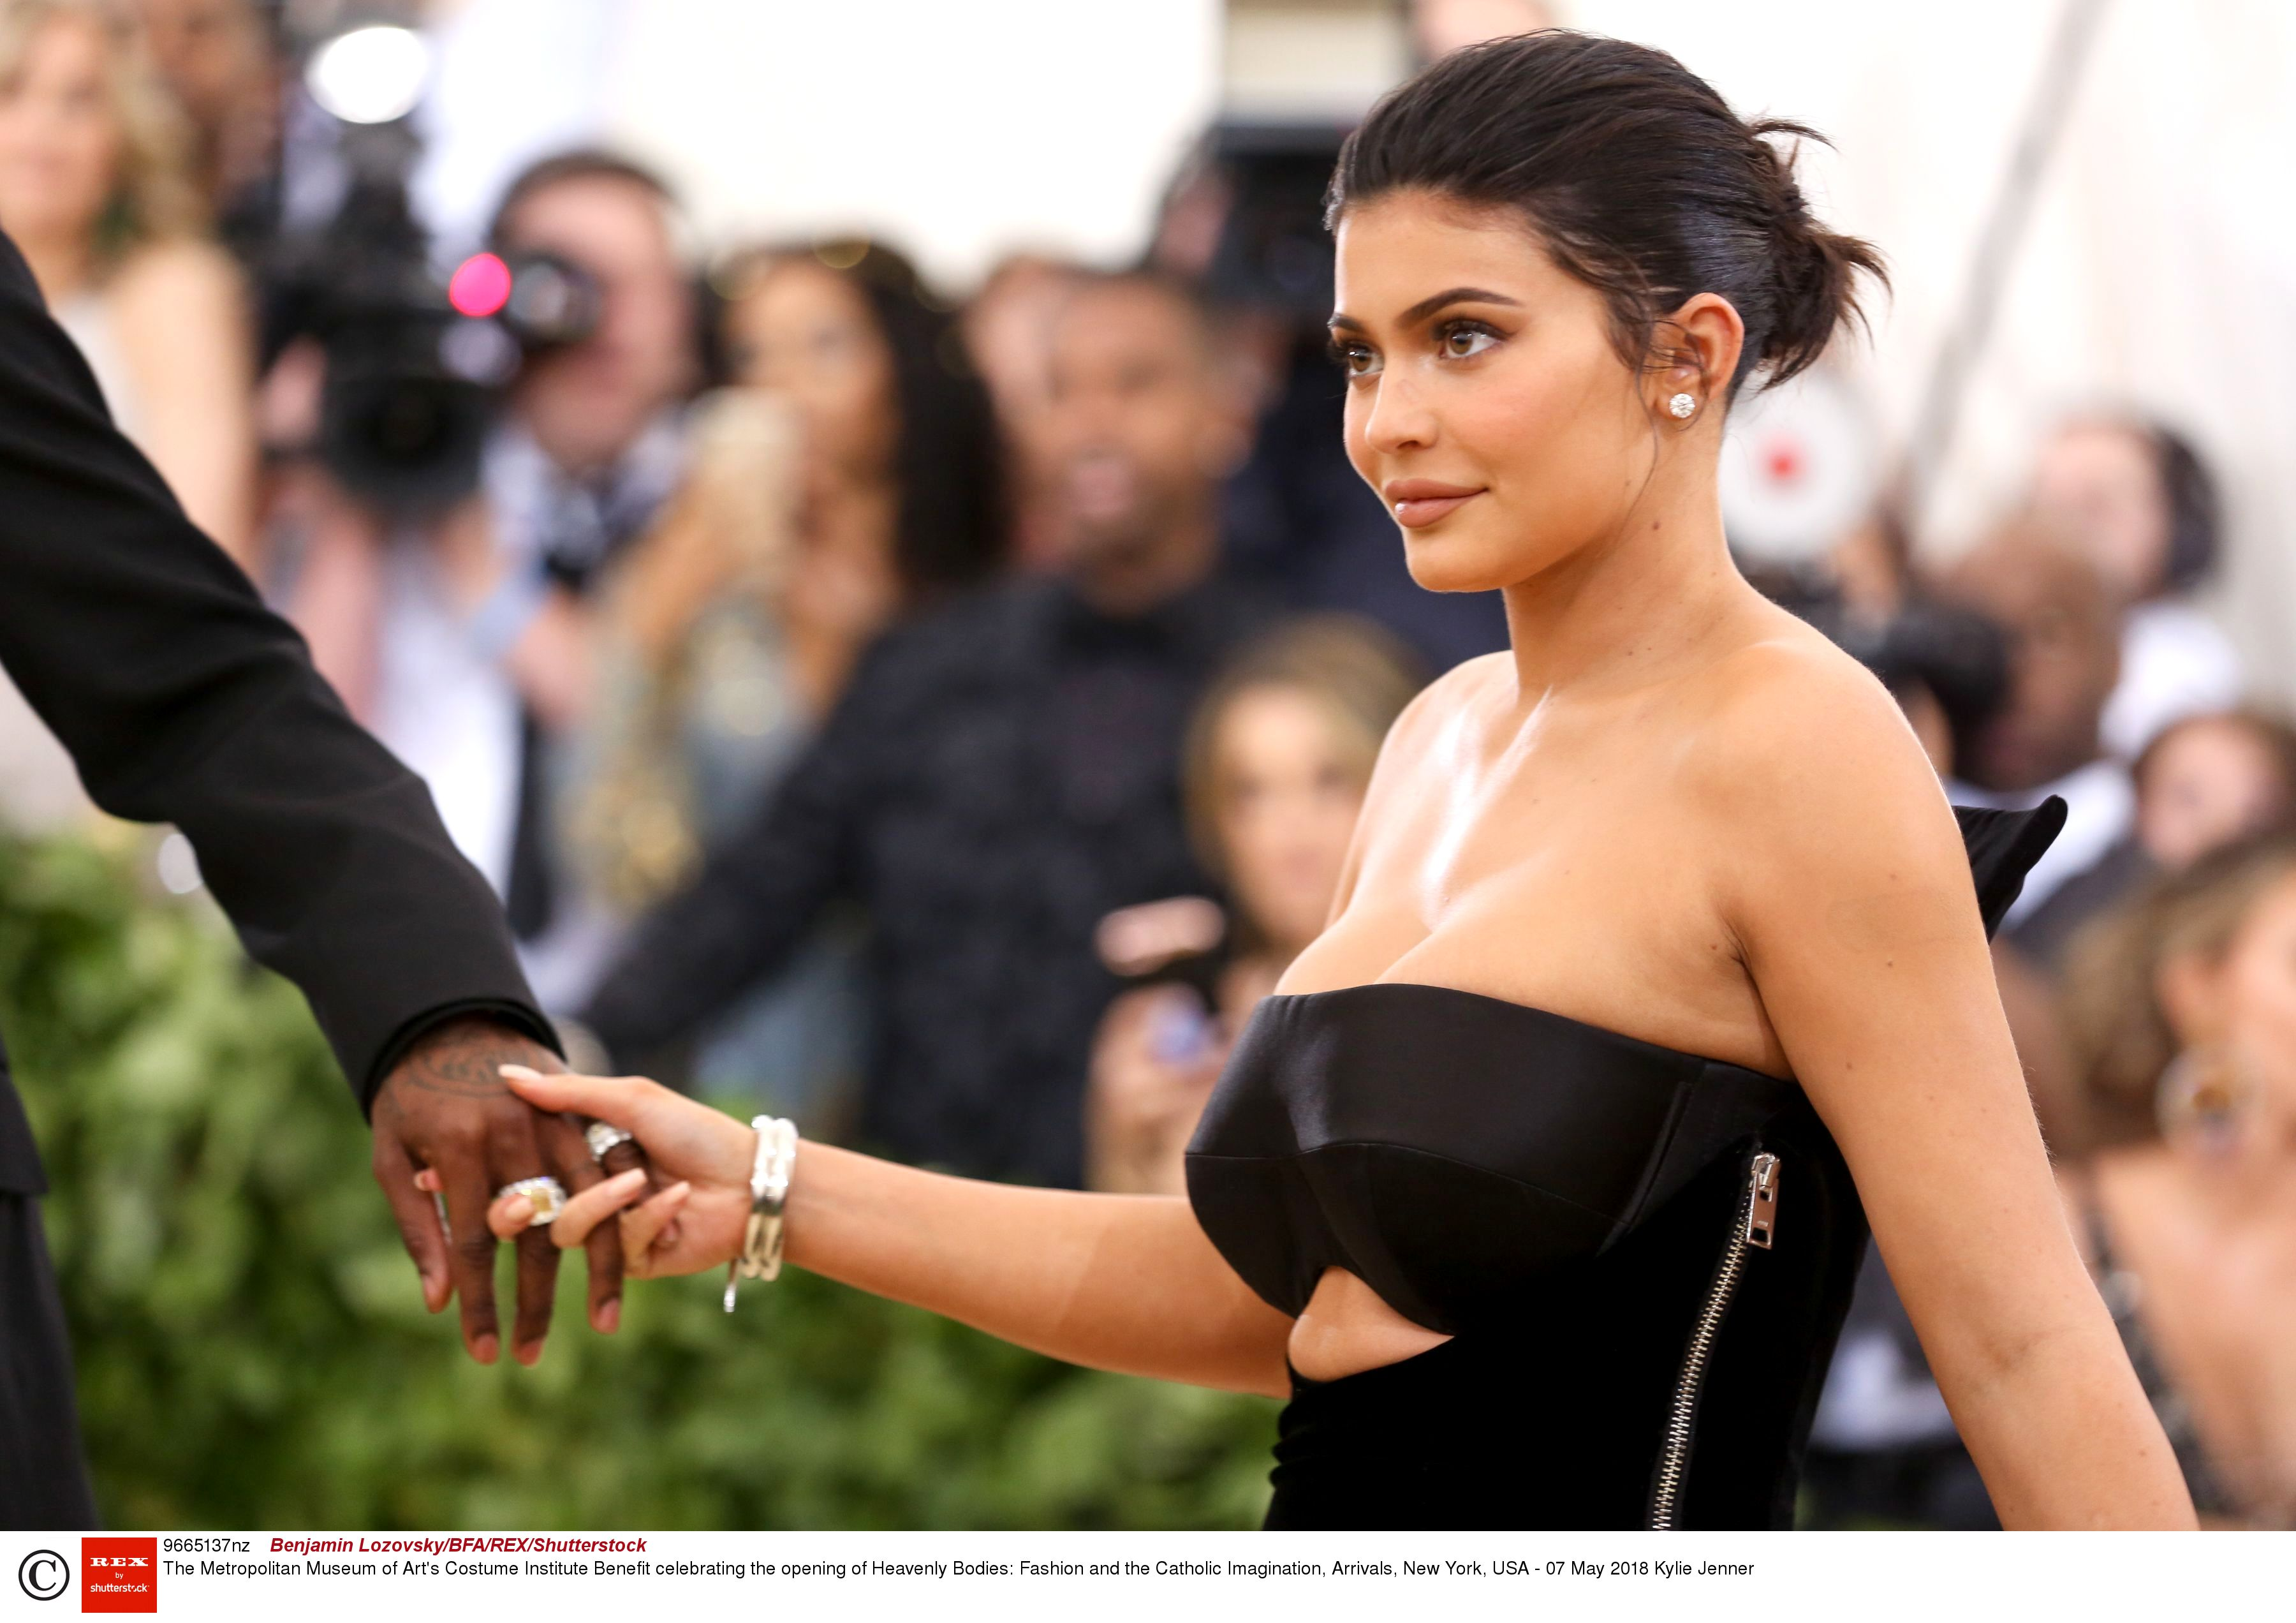 Kardashian sister Kylie Jenner on way to being youngest billionaire     Kylie Jenner has amassed a  900 million fortune derived largely from her  cosmetics company